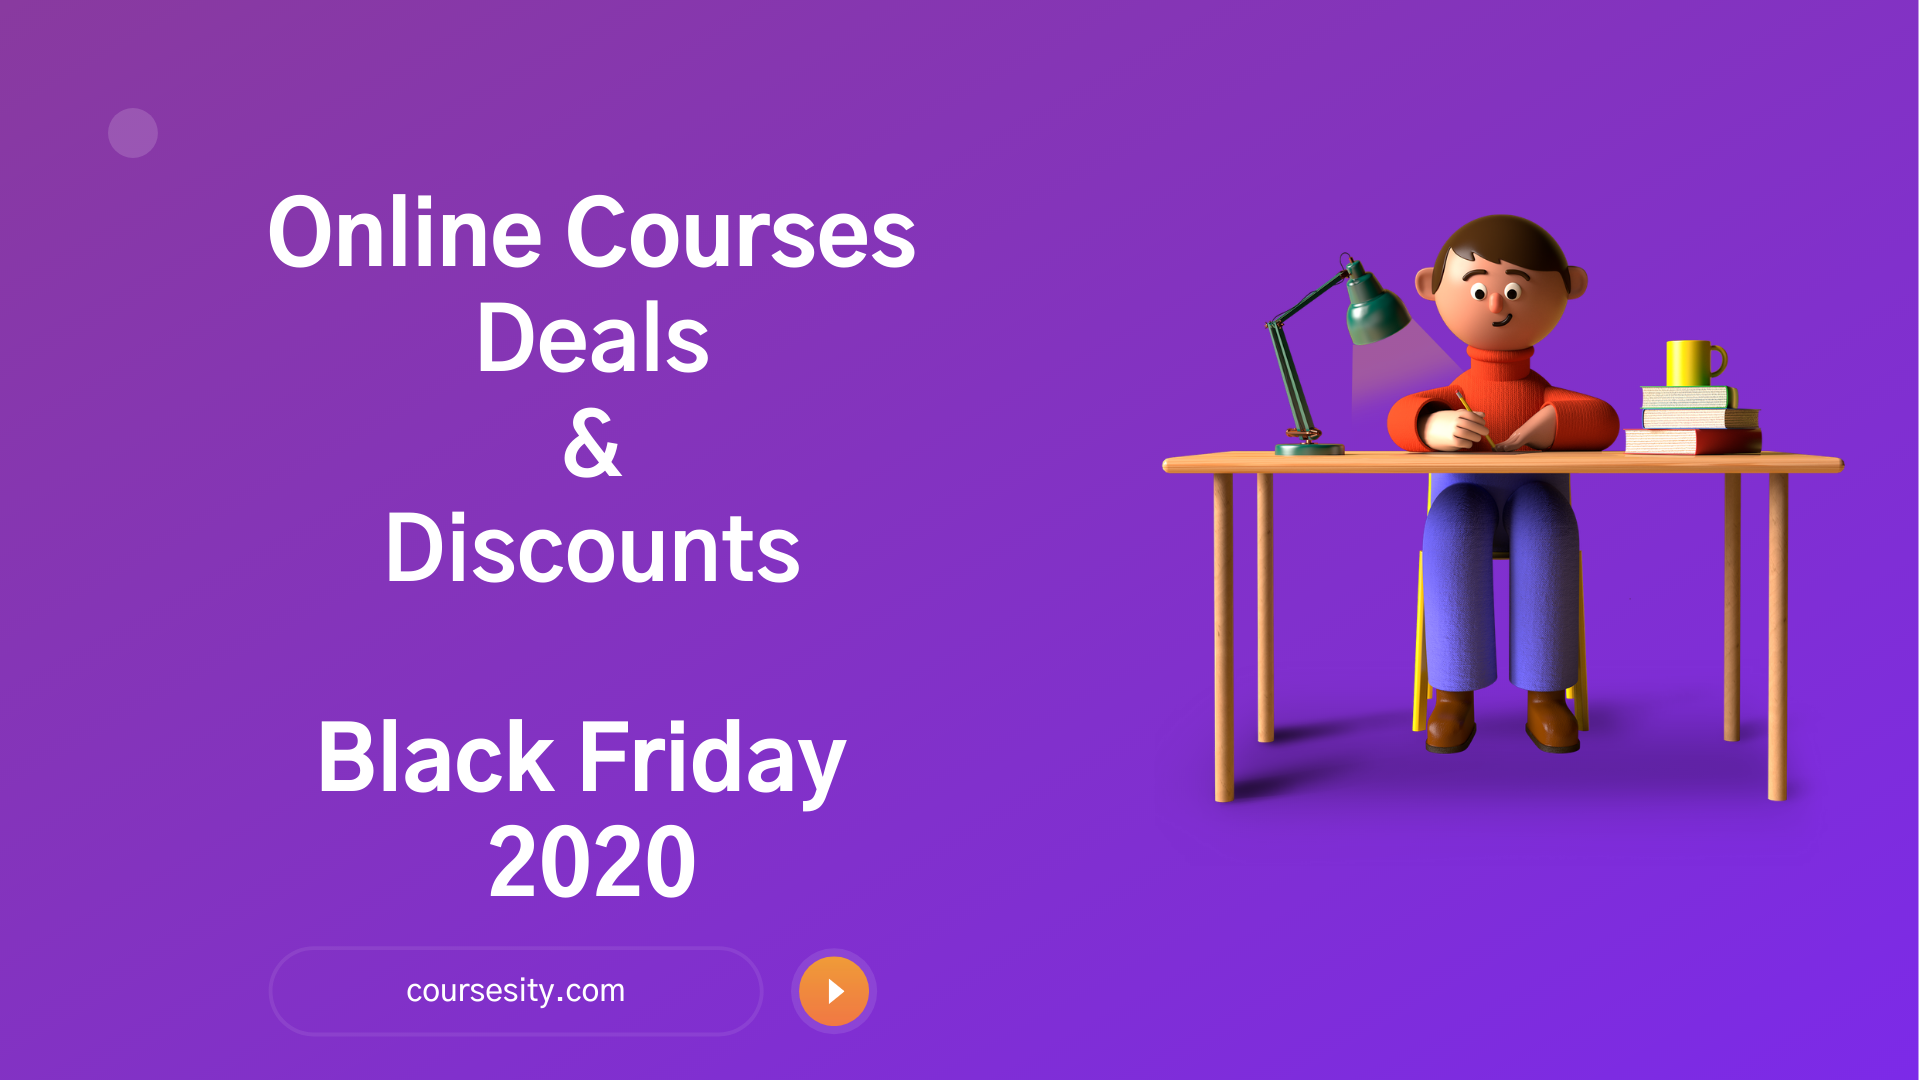 10 Online Courses Deals: Black Friday Discounts & Coupons 2020